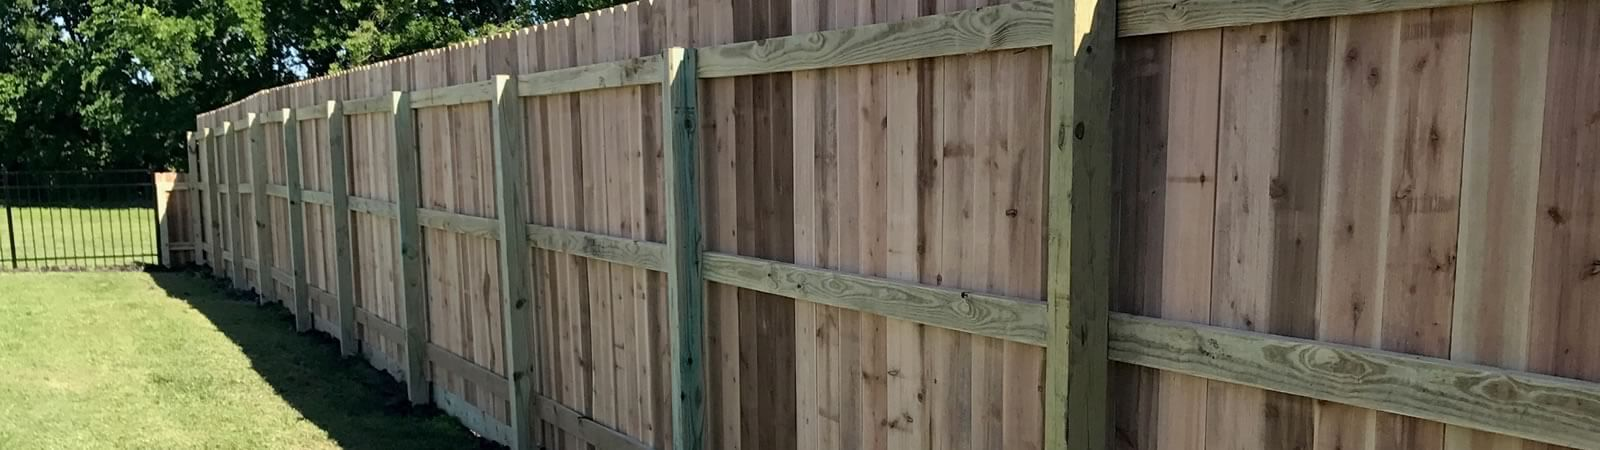 Wooden Privacy Fence company in Victoria Texas